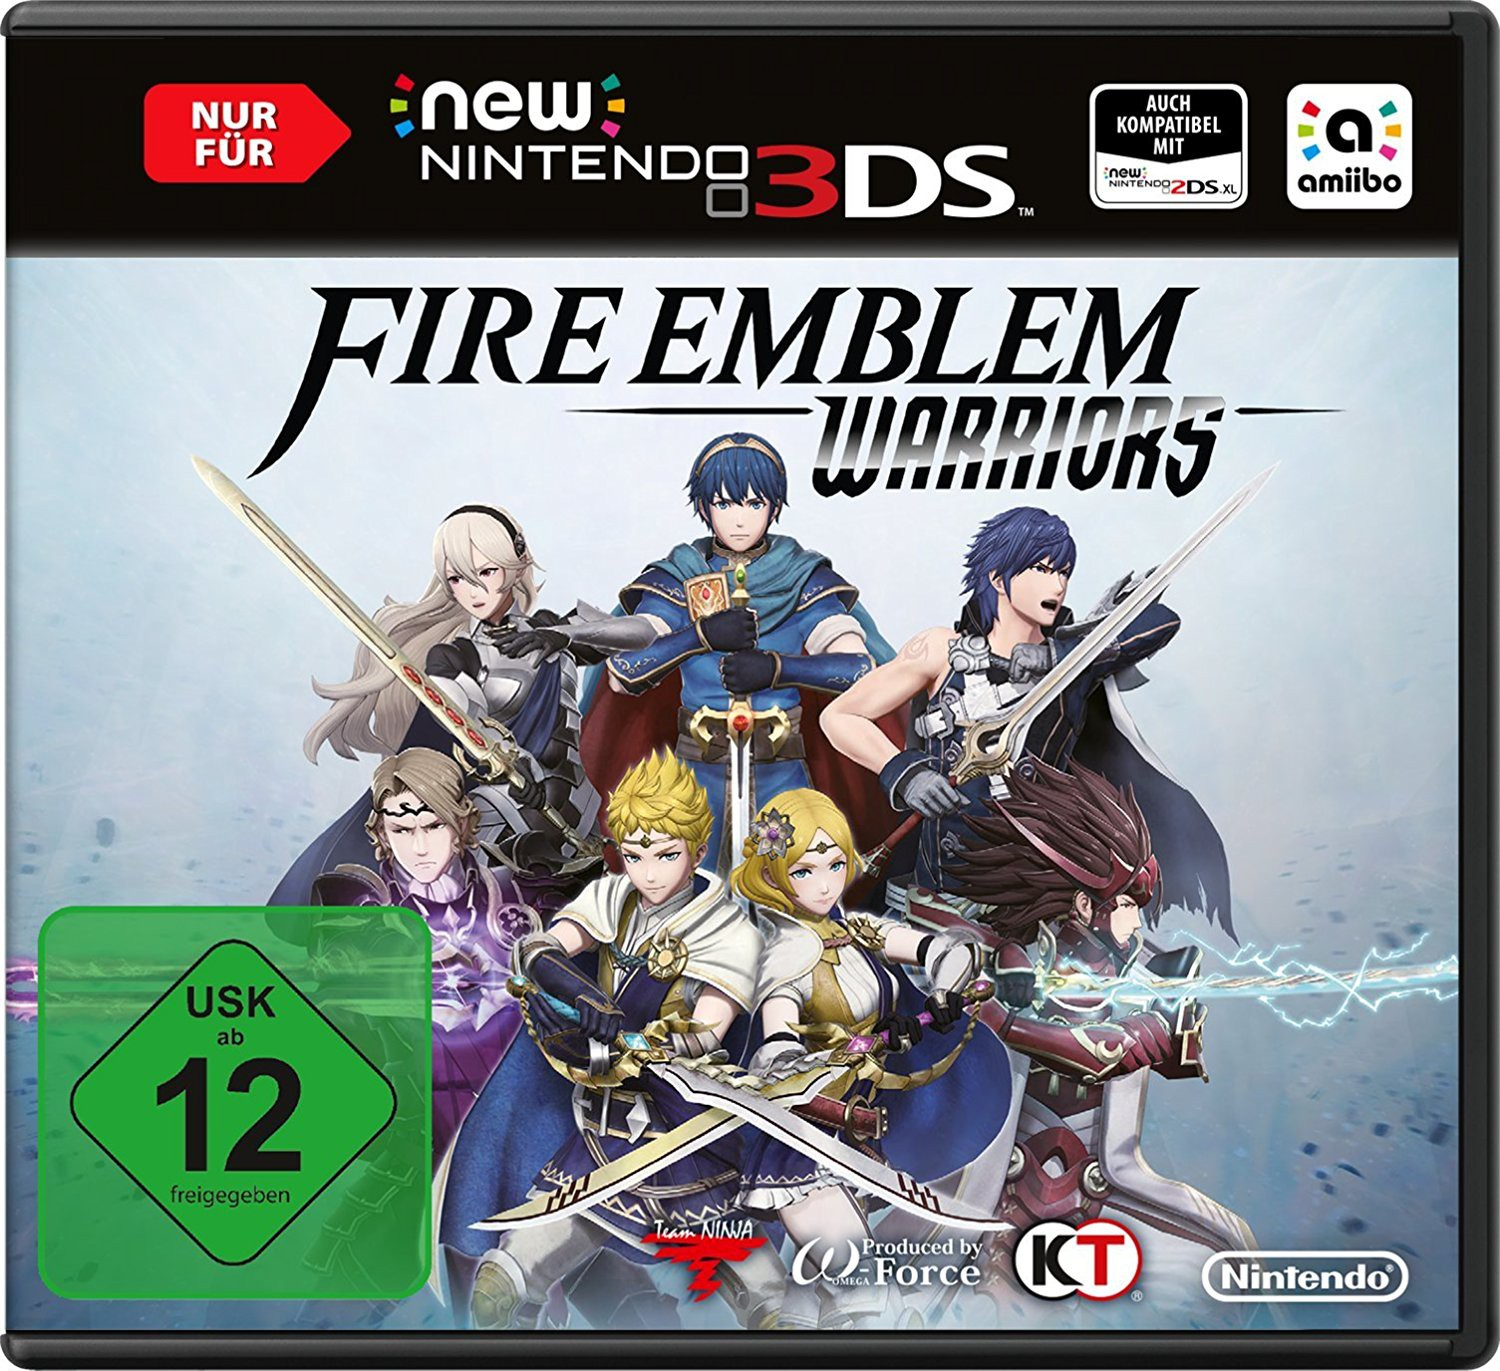 Nintendo 3DS - Fire Emblem: Warriors